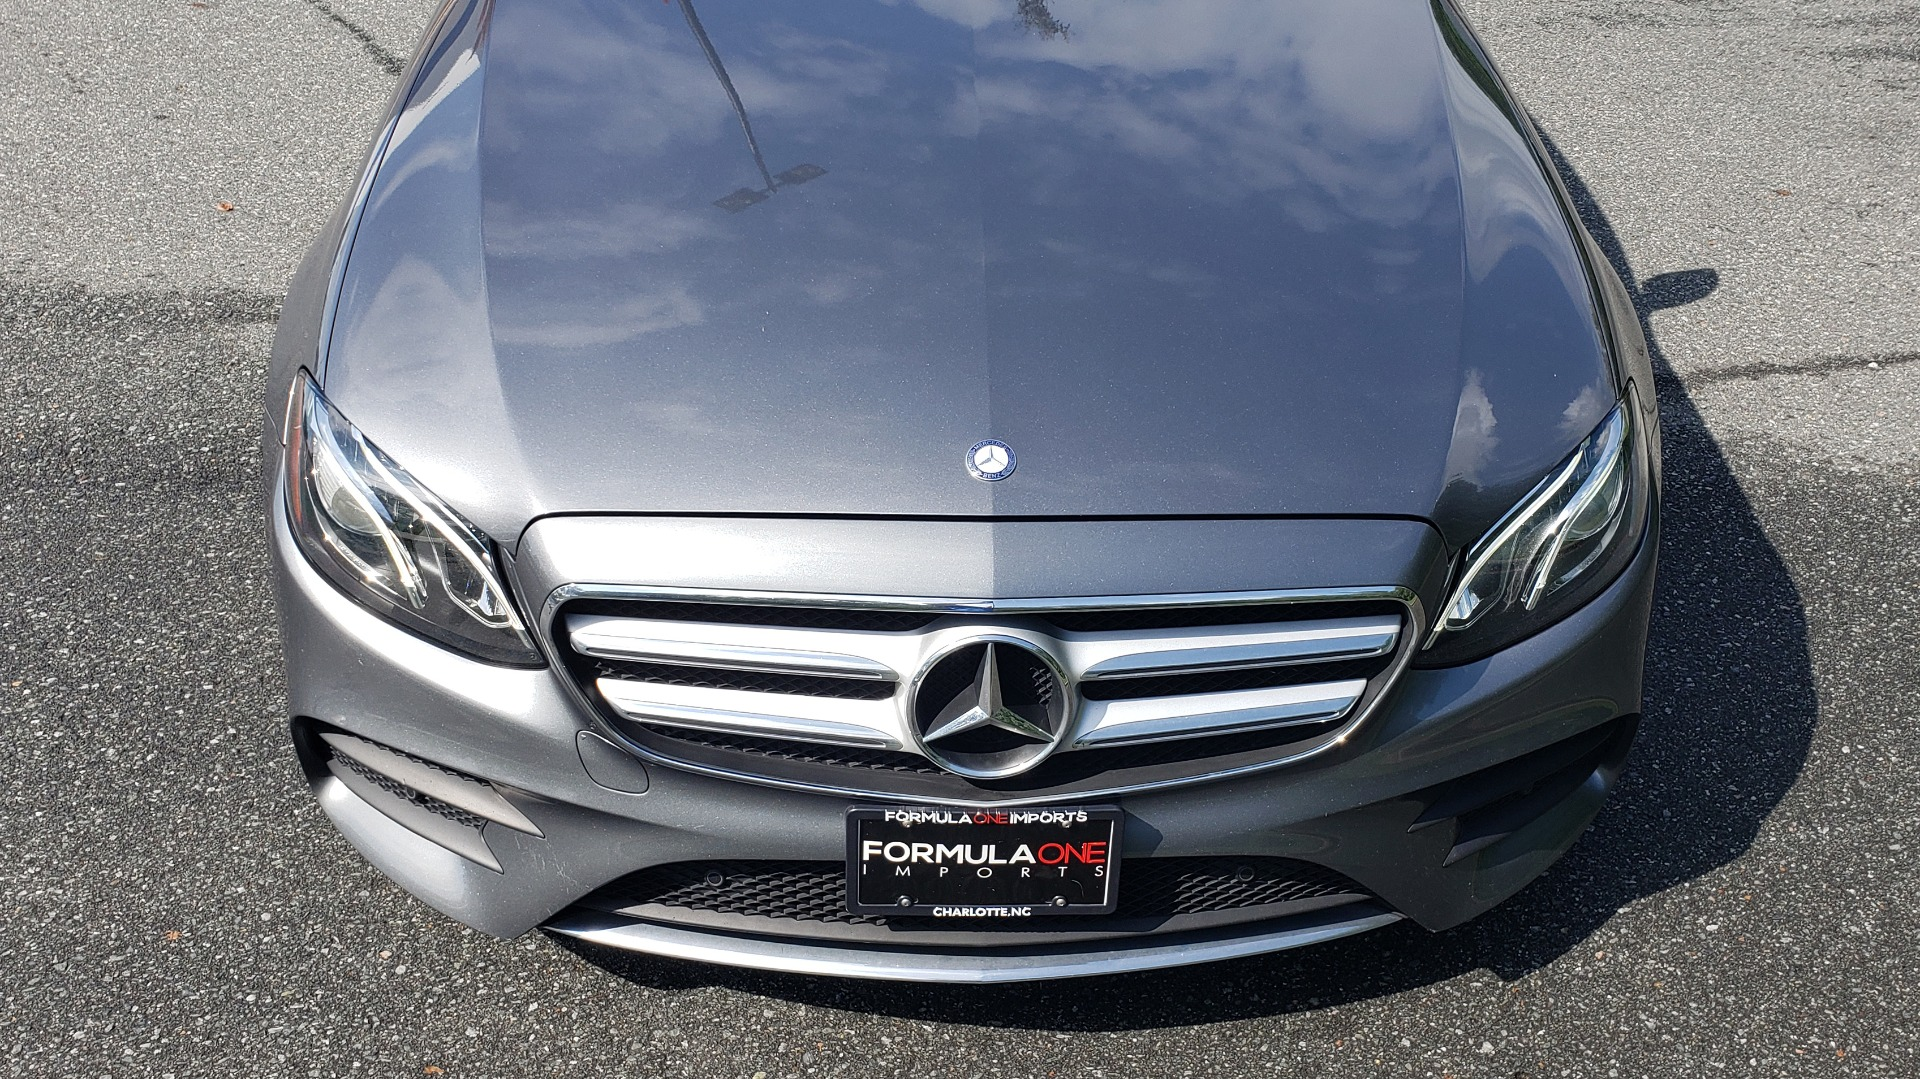 Used 2017 Mercedes-Benz E-CLASS E 300 SPORT / NAV / SUNROOF / HTD STS / BURMESTER / REARVIEW for sale Sold at Formula Imports in Charlotte NC 28227 13